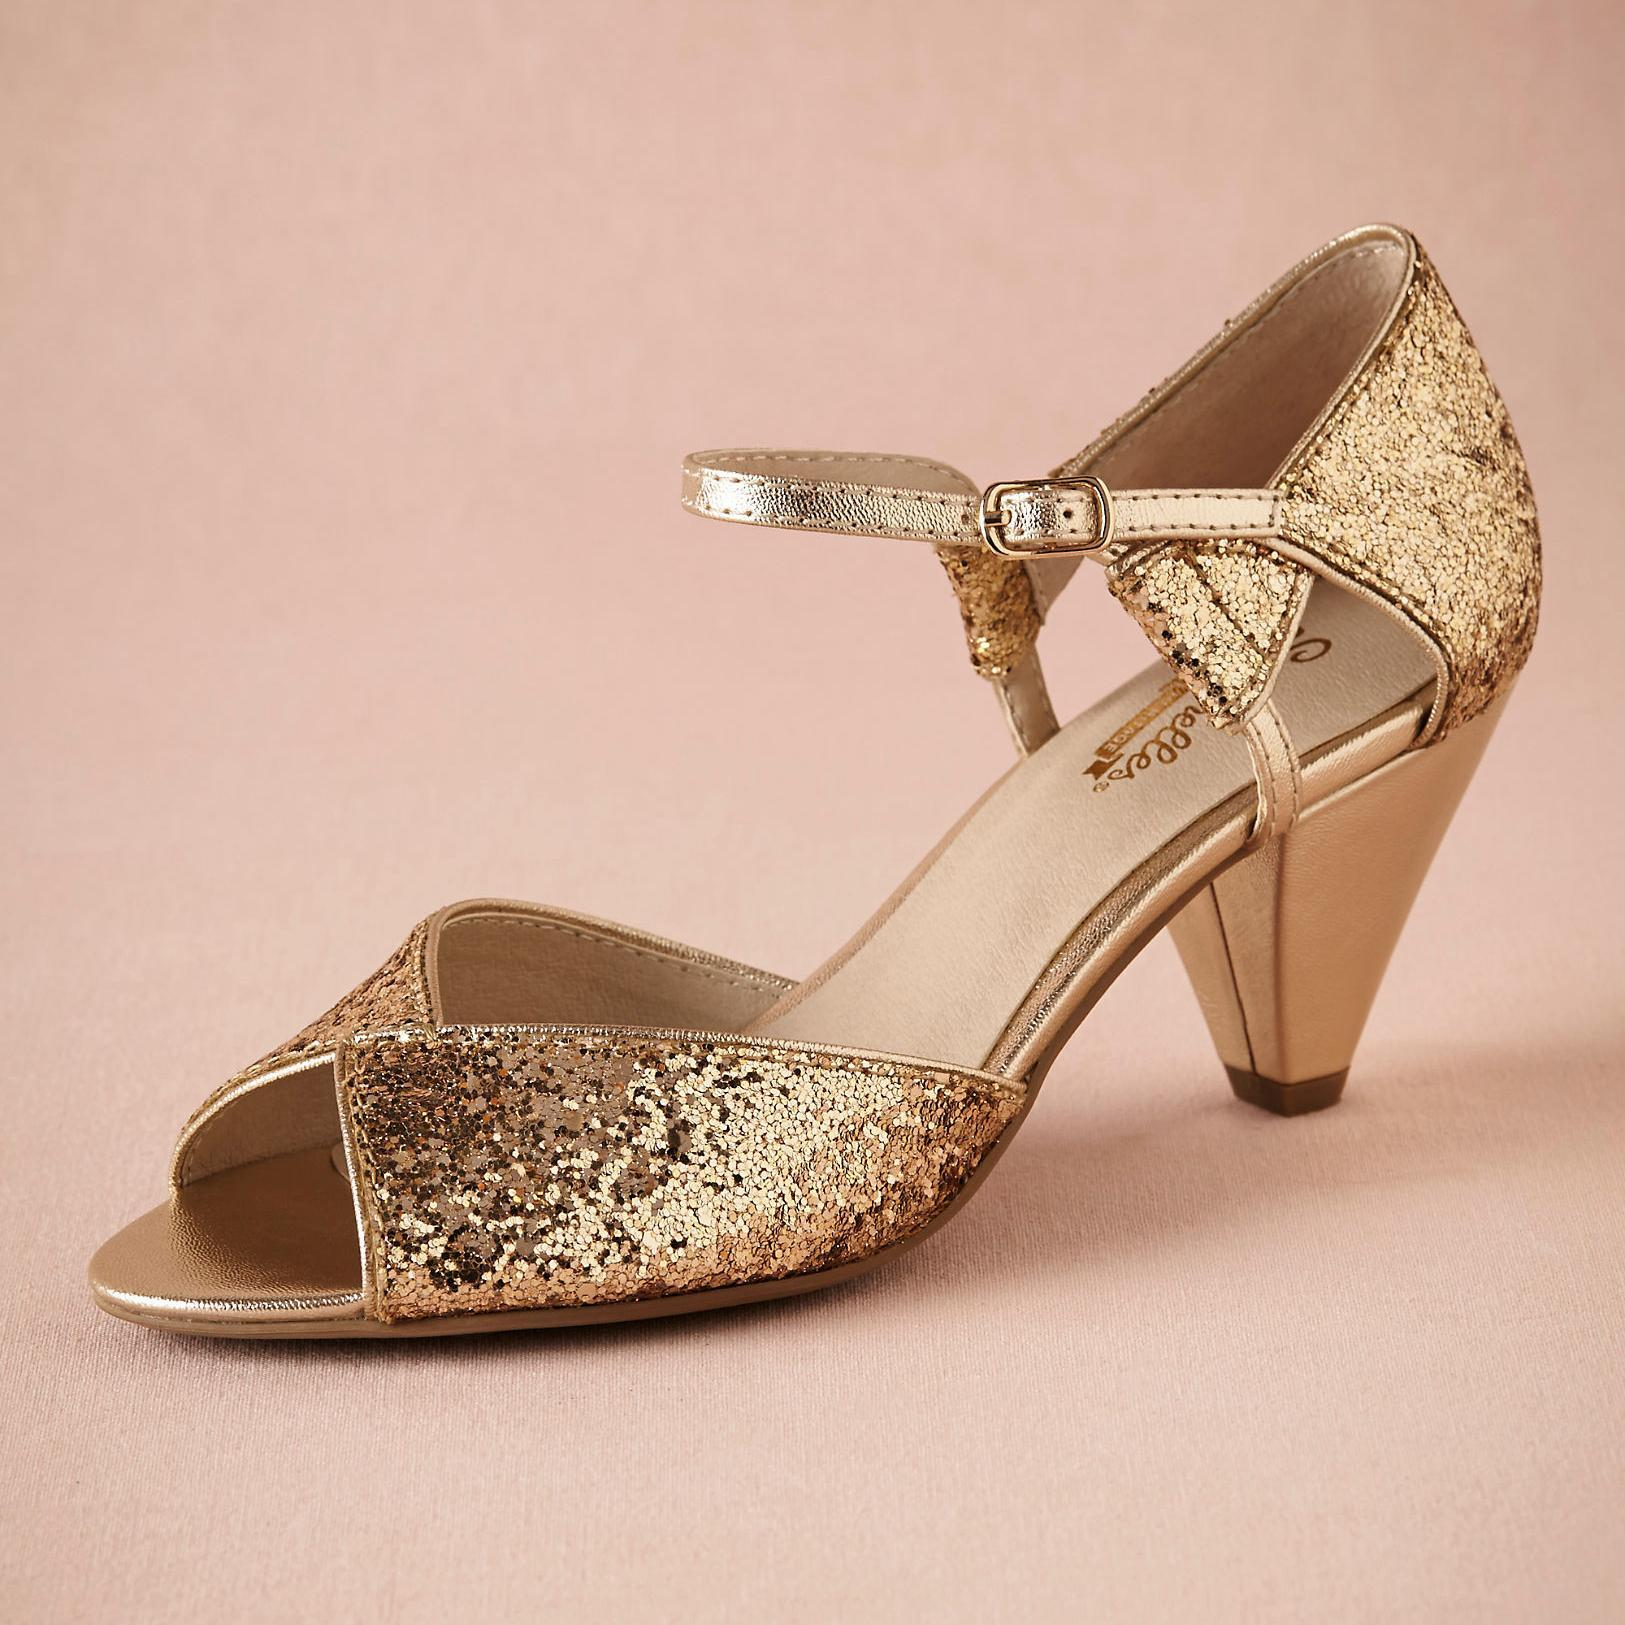 pewter shoes for wedding photo - 1